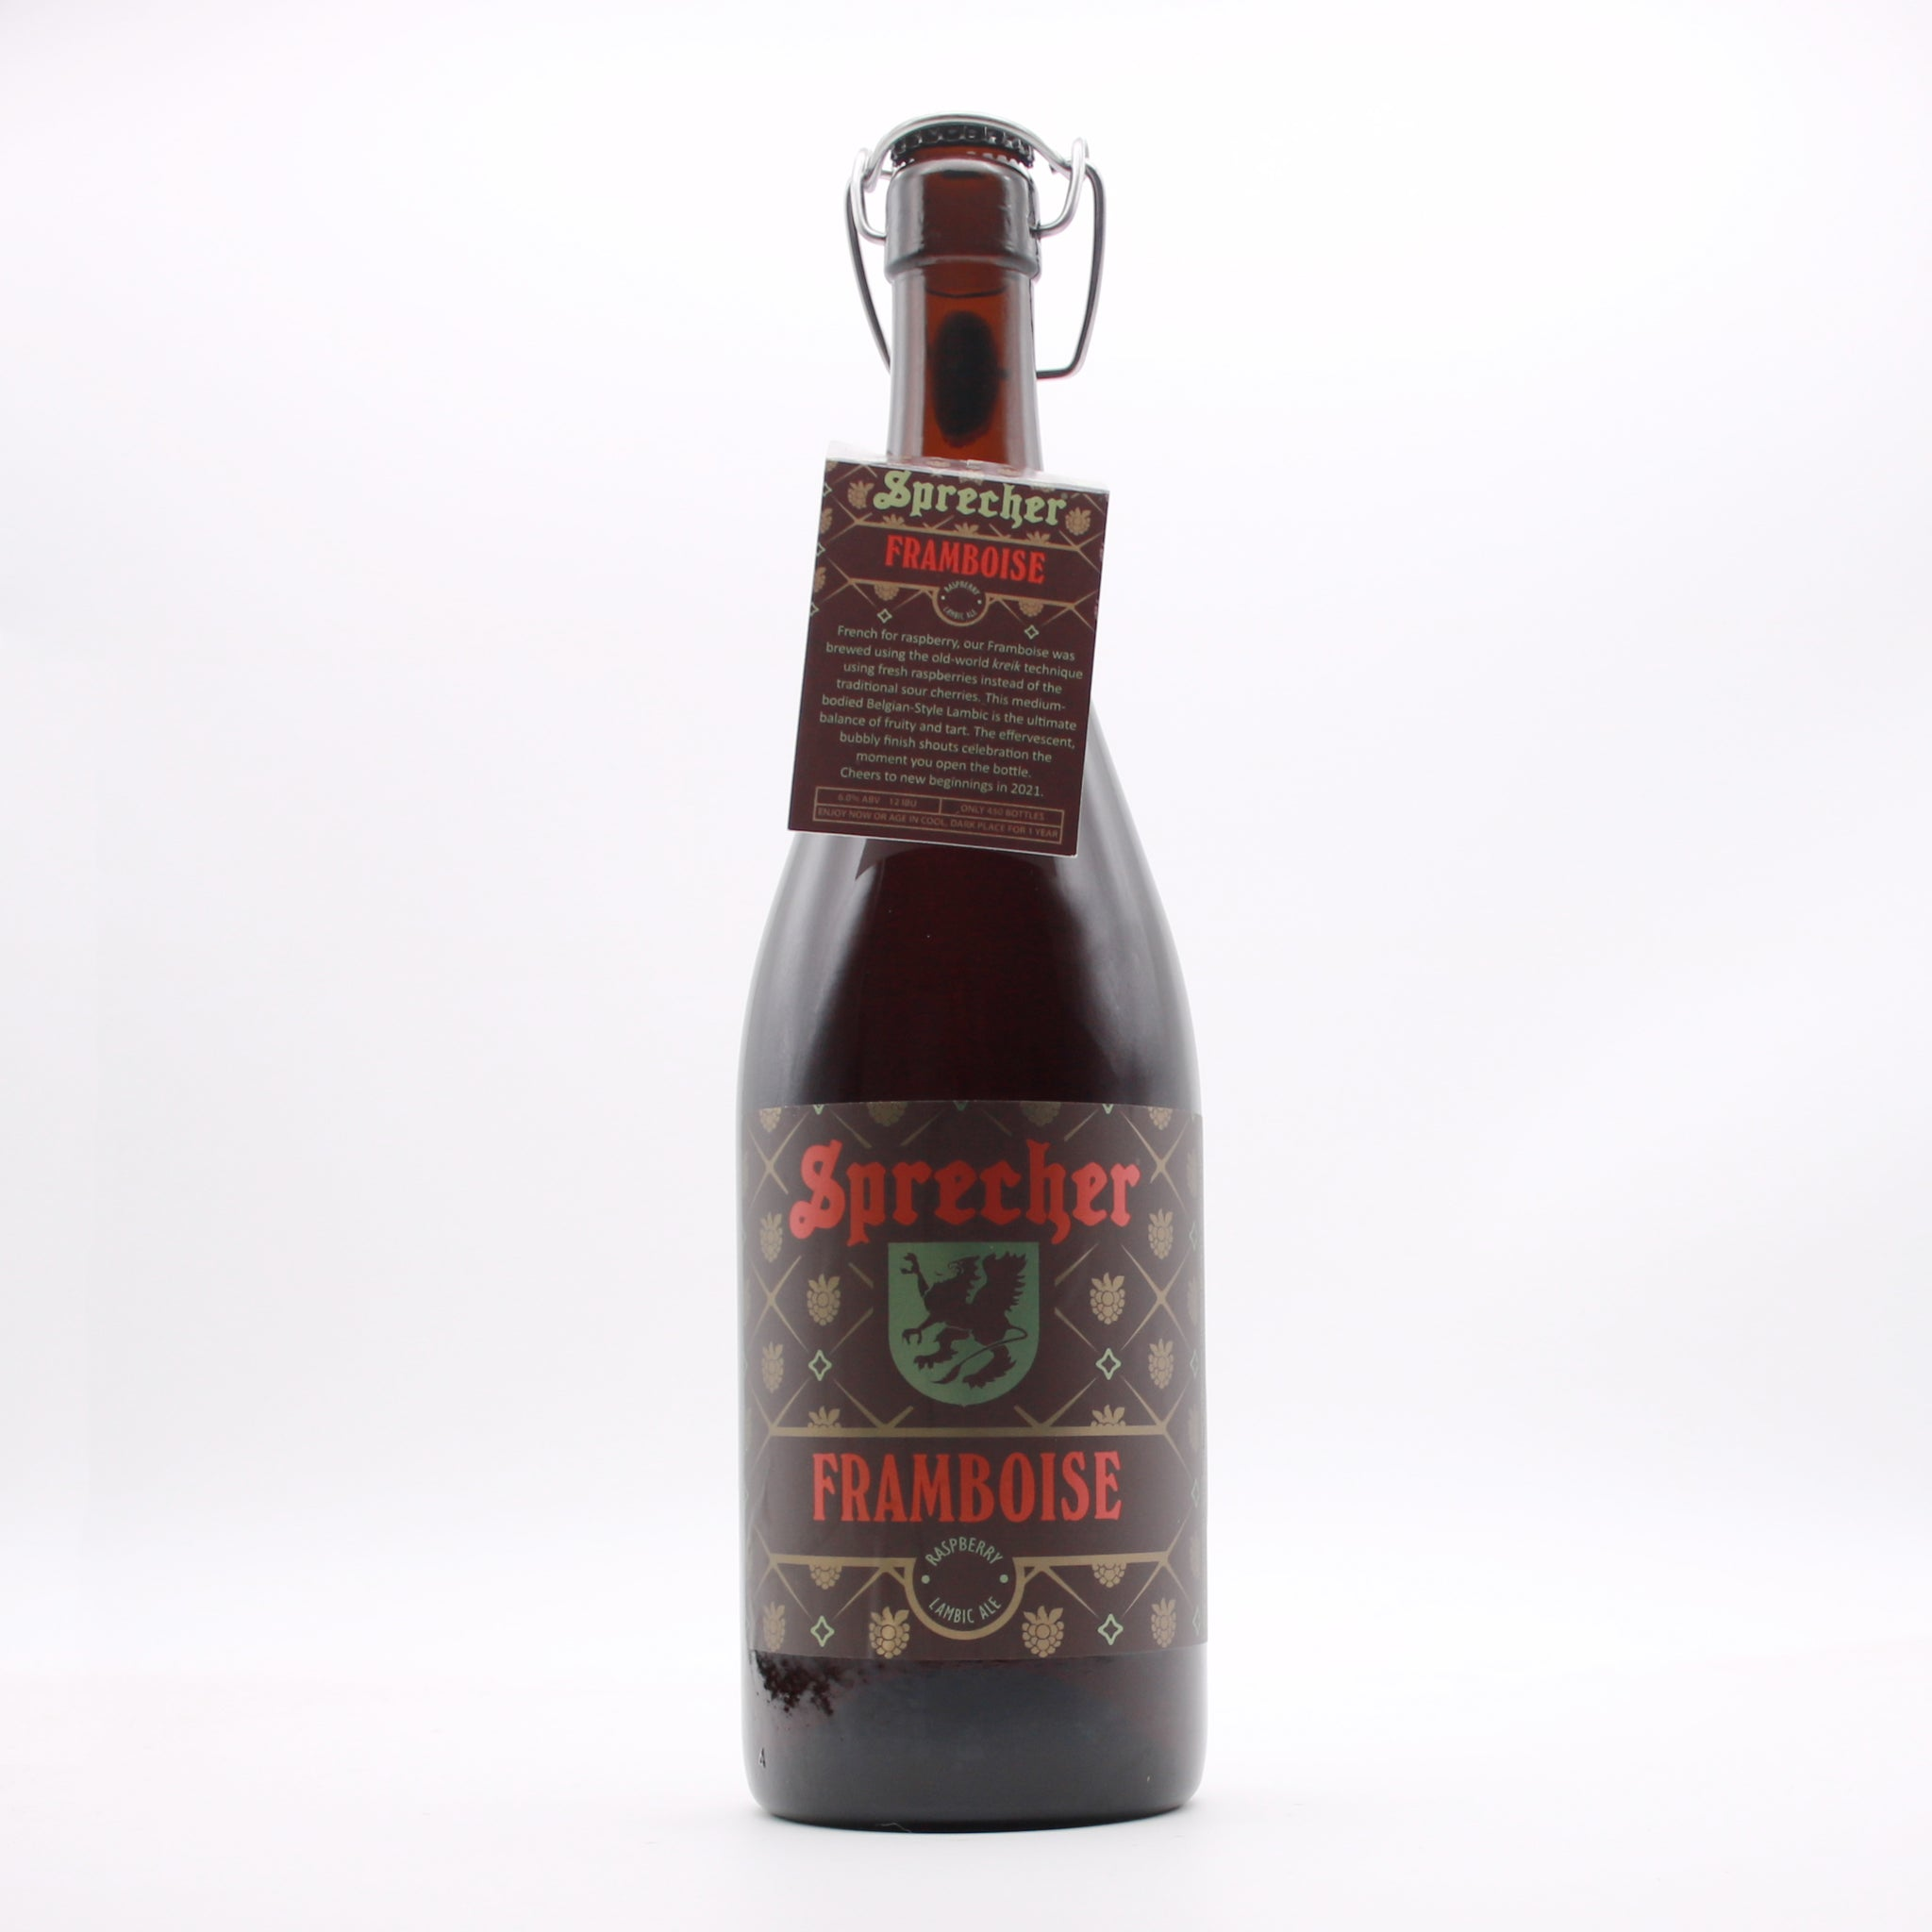 A 1-Liter bottle of Sprecher's Framboise.